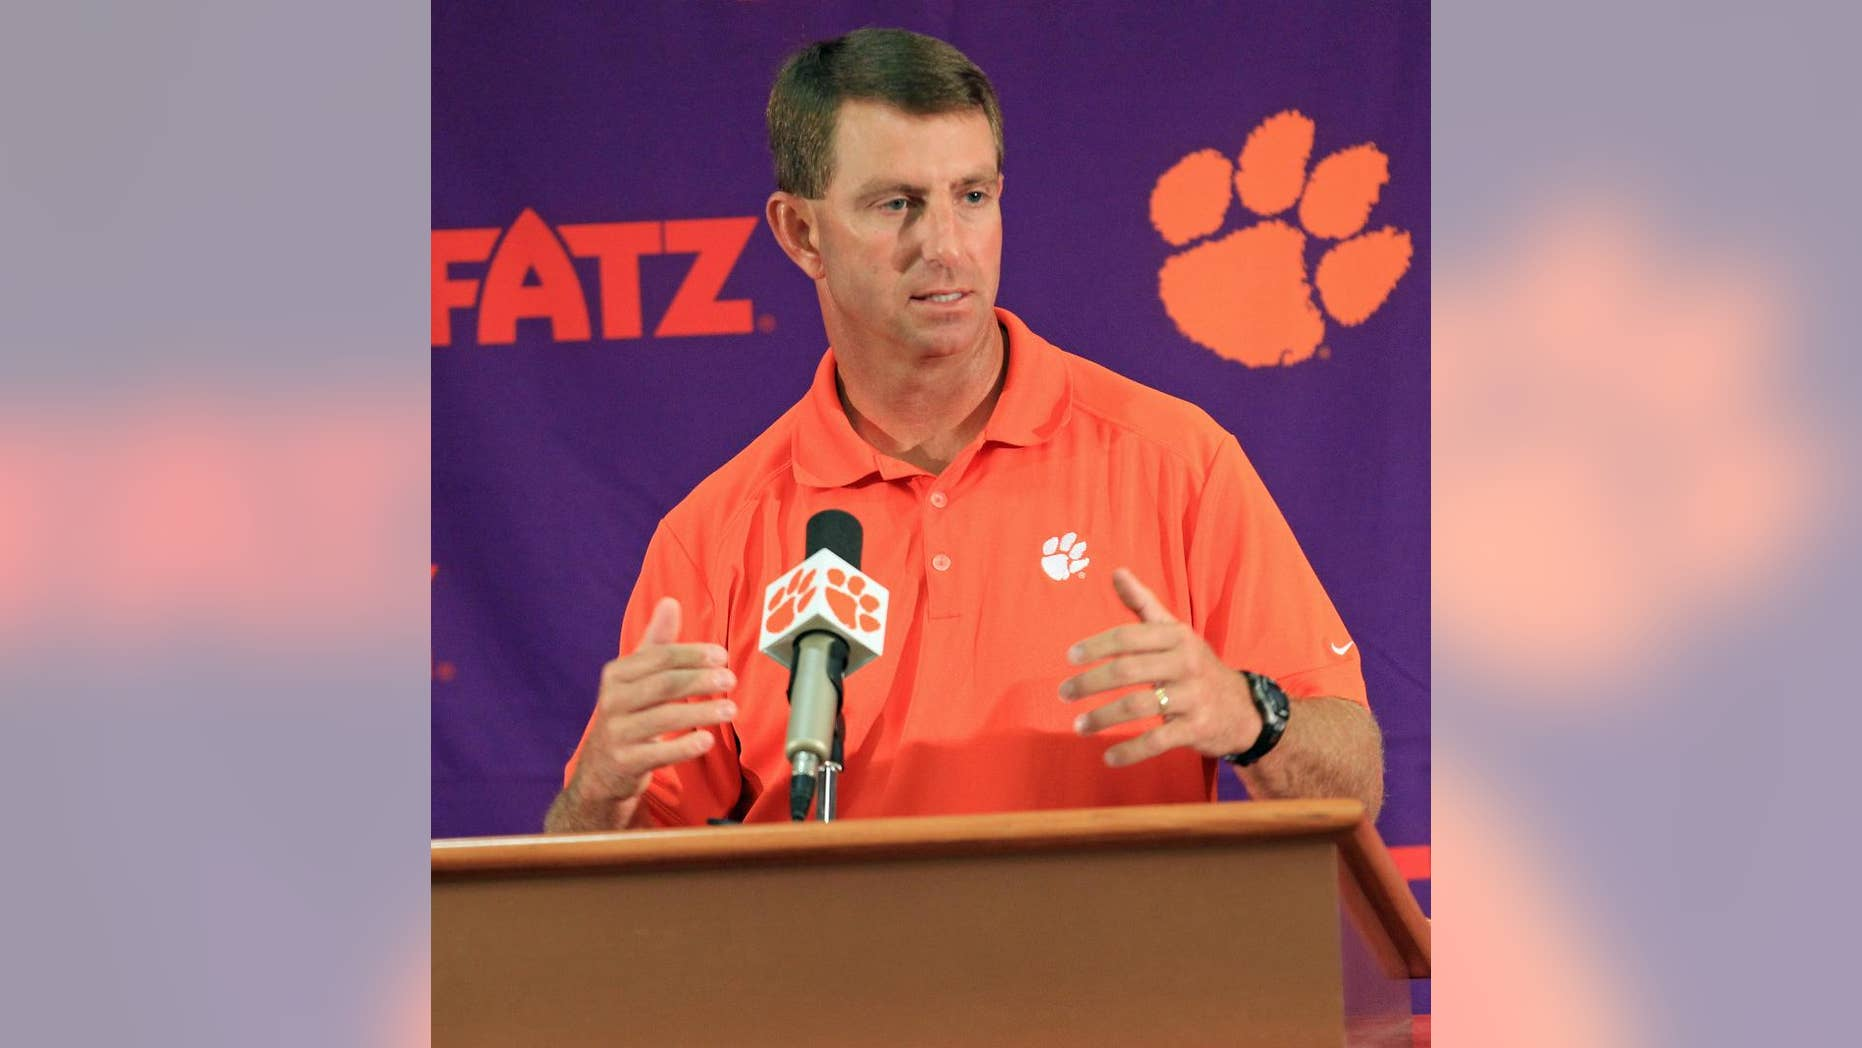 Clemson head coach Dabo Swinney discusses the Tigers' NCAA college football 2014 season at Memorial Stadium in Clemson, S.C. on Tuesday, Aug. 26, 2014. Clemson opens the season at Georgia on Aug. 30. (AP Photo/Anderson Independent-Mail, Mark Crammer)